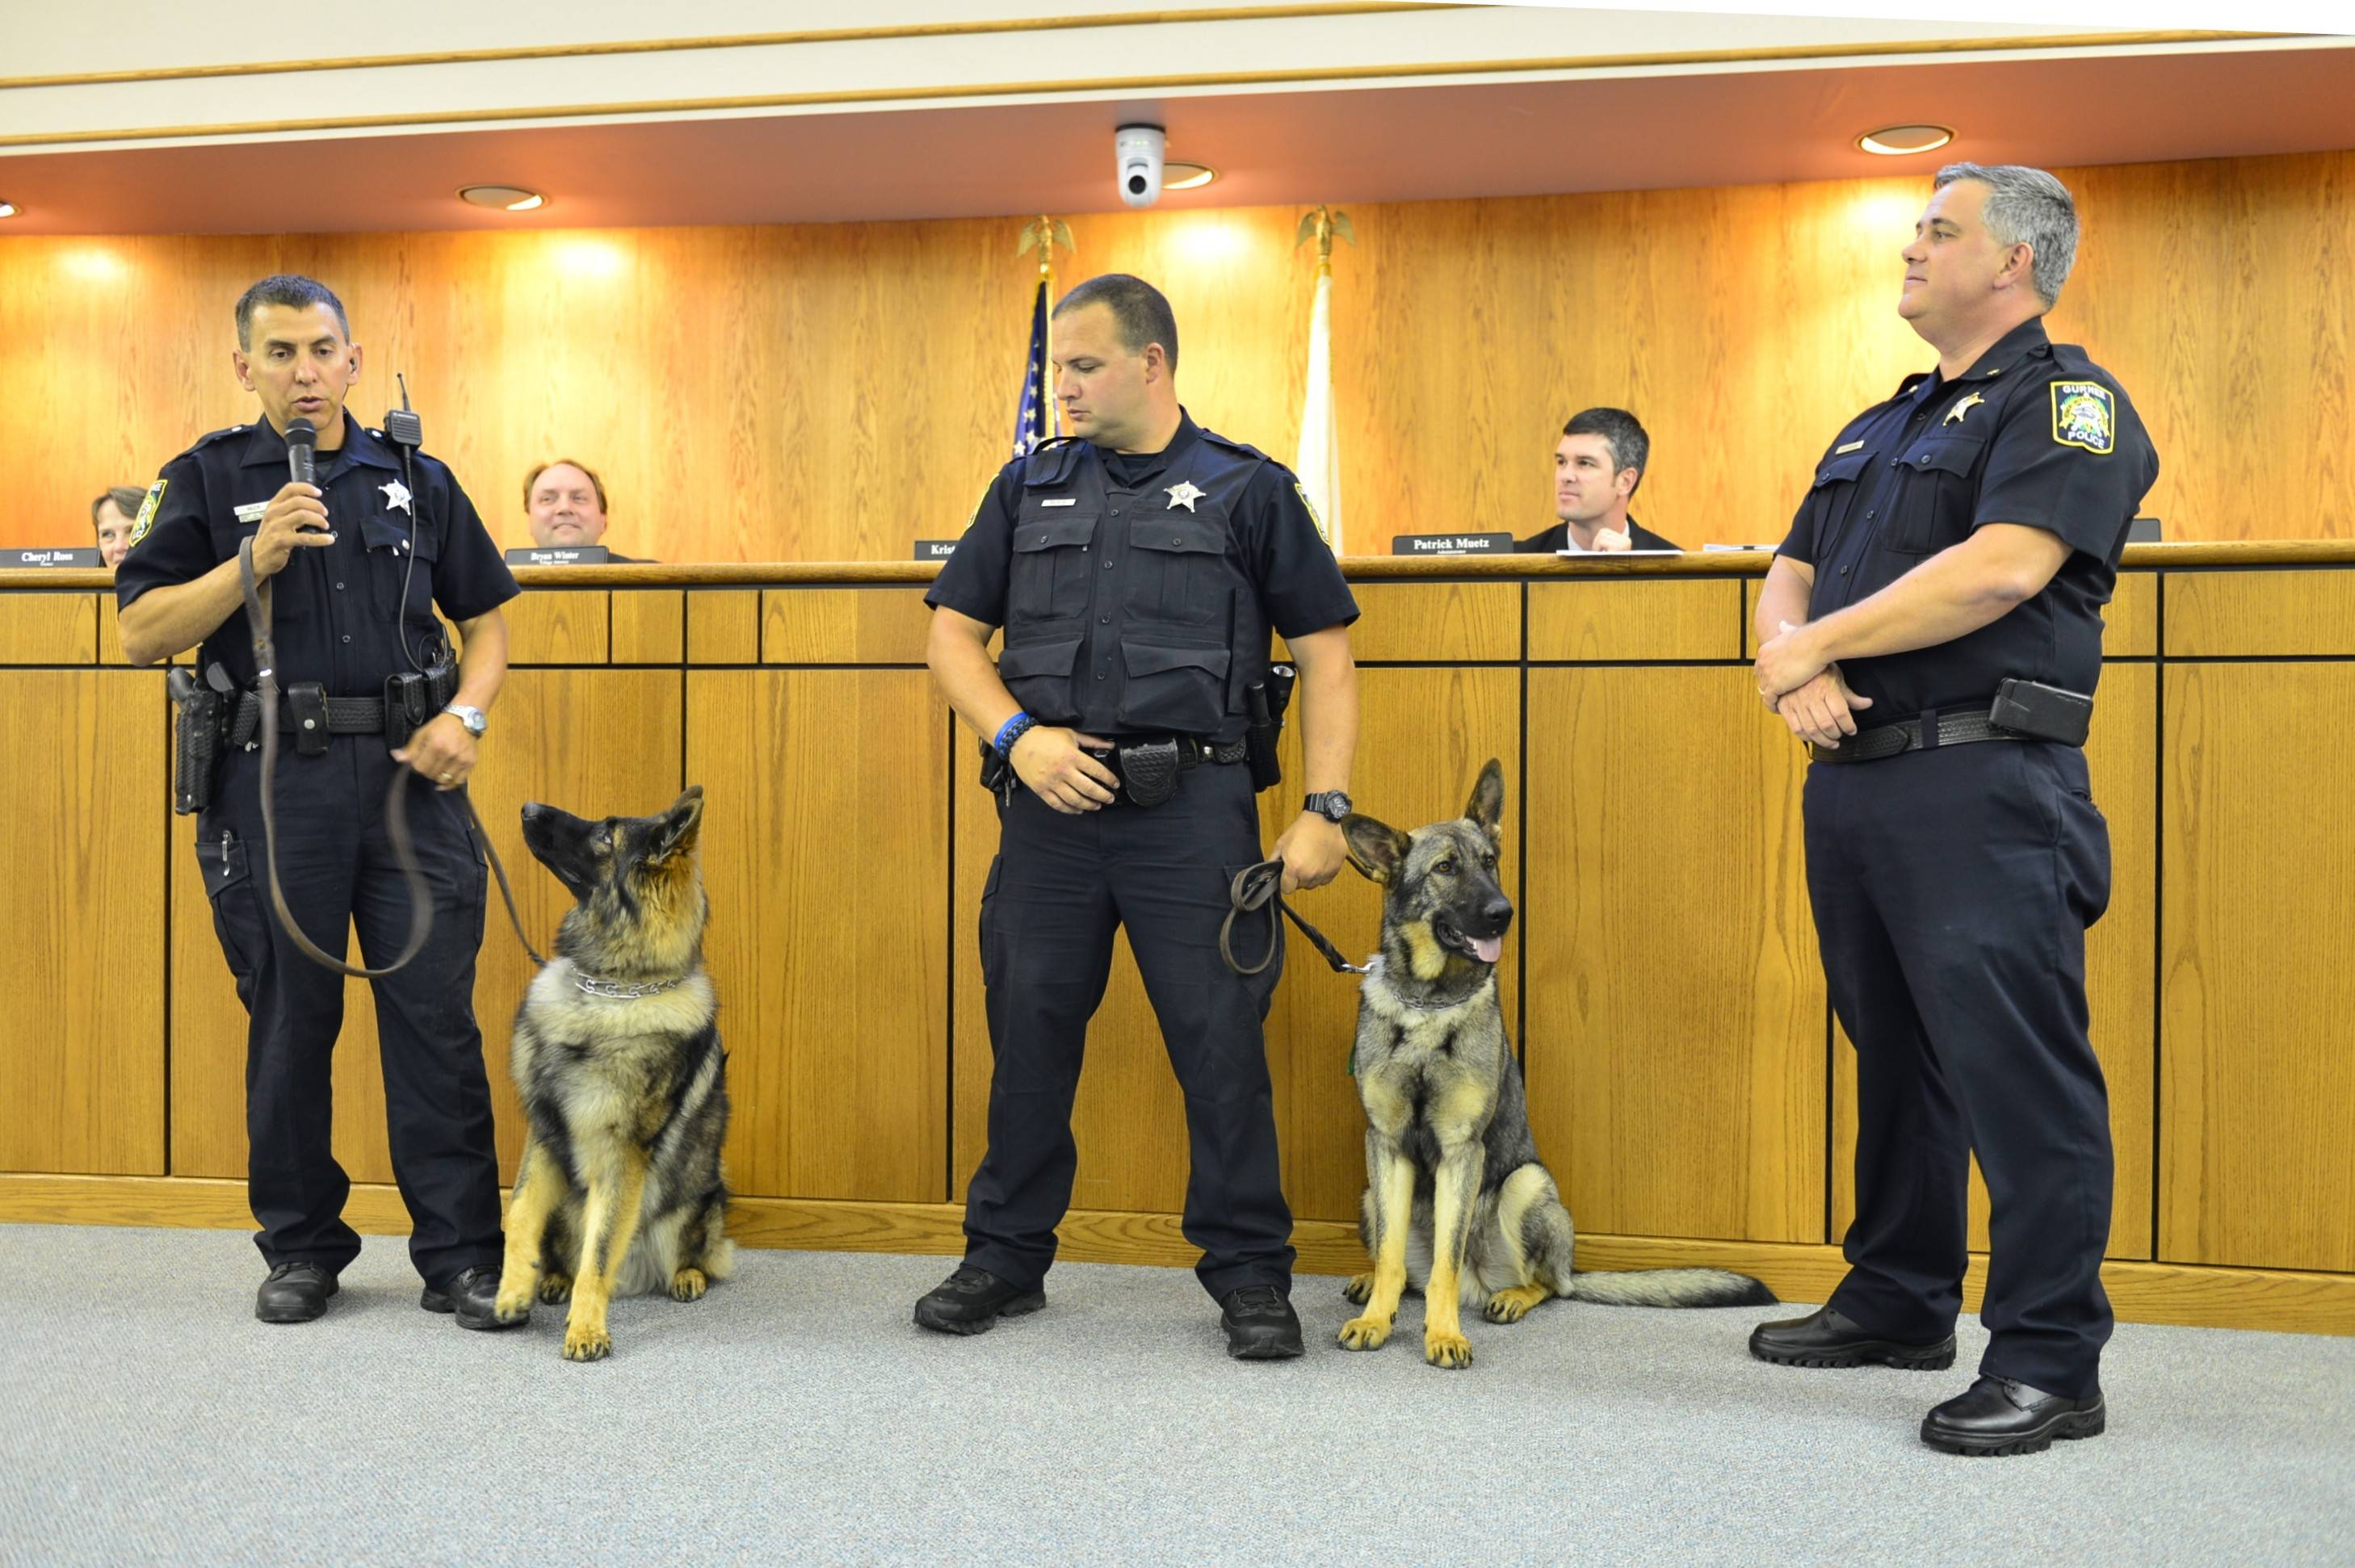 Gurnee police now have two canine units instead of one. Introduced at a recent village board meeting were Officer Philip Mazur and Hunter, left, and Officer J.R. Nauseda with Bear, right. Police Chief Kevin Woodside, right, said the German shepherds rotate shifts, allowing for more daily coverage.